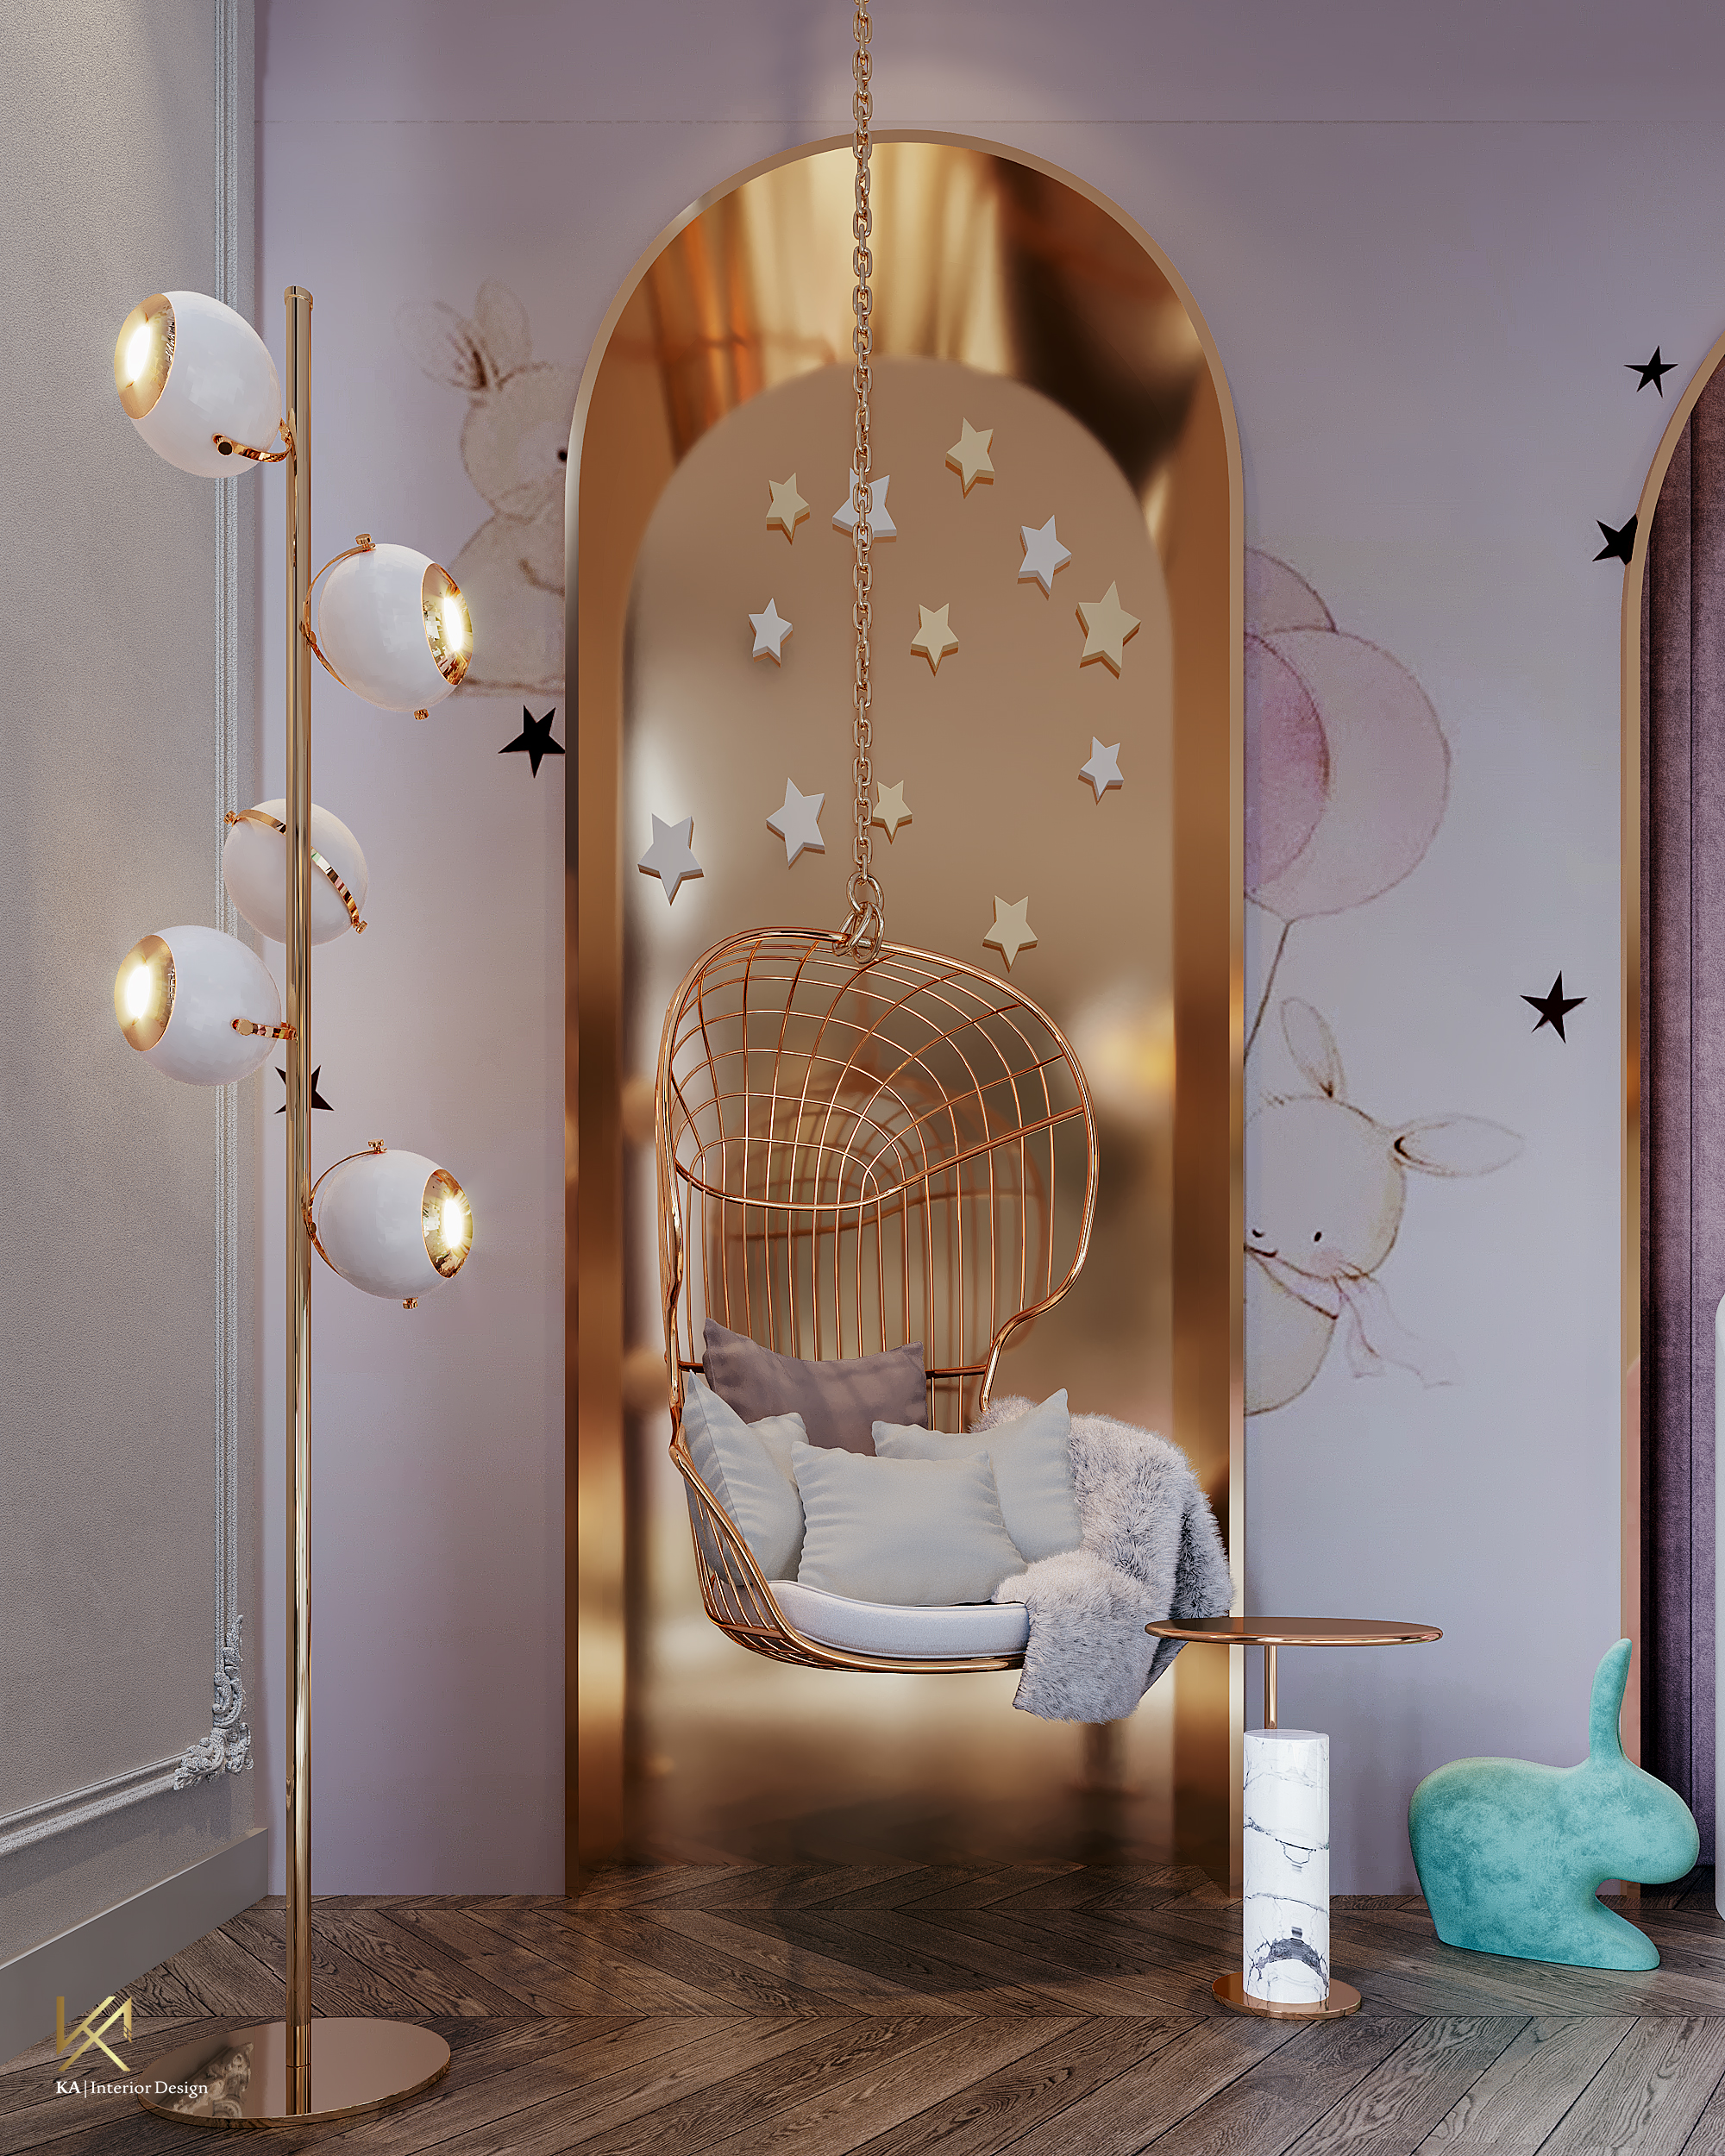 Luxury Girls Room: In a Cloudy Sky, be a golden star-7